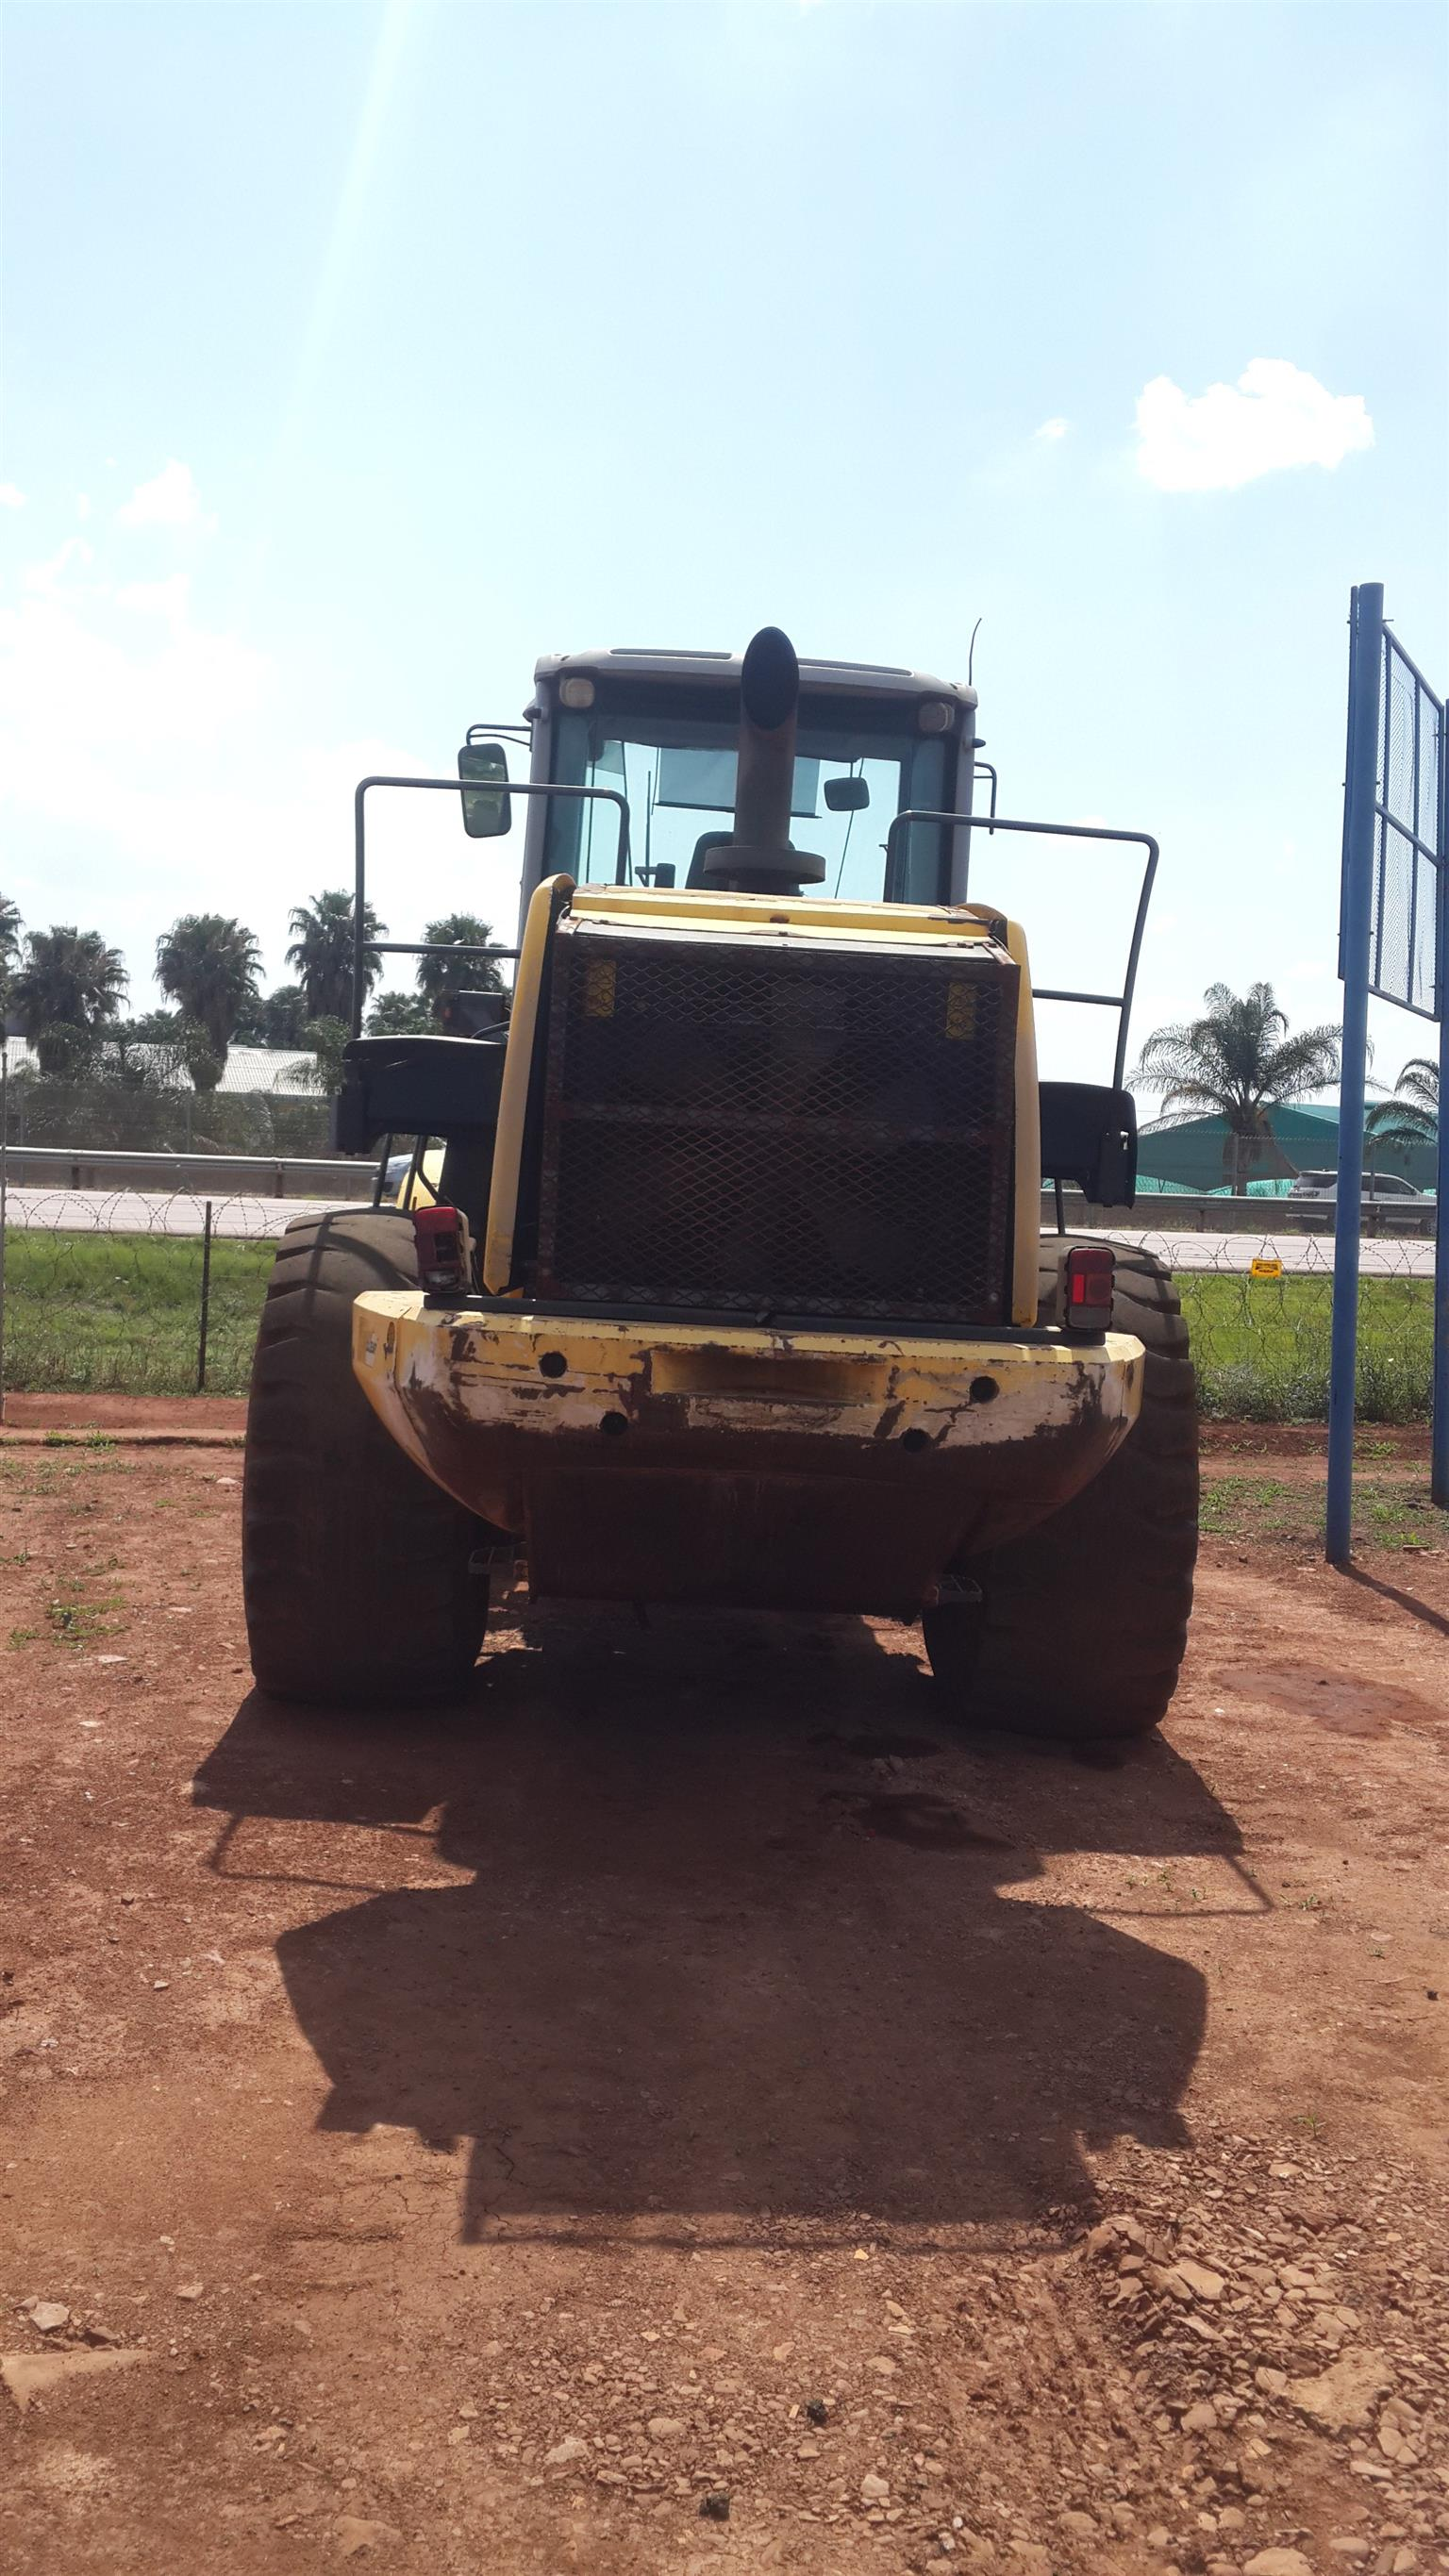 Bell fronted loader L2606E and New Holland fronted loader W270B